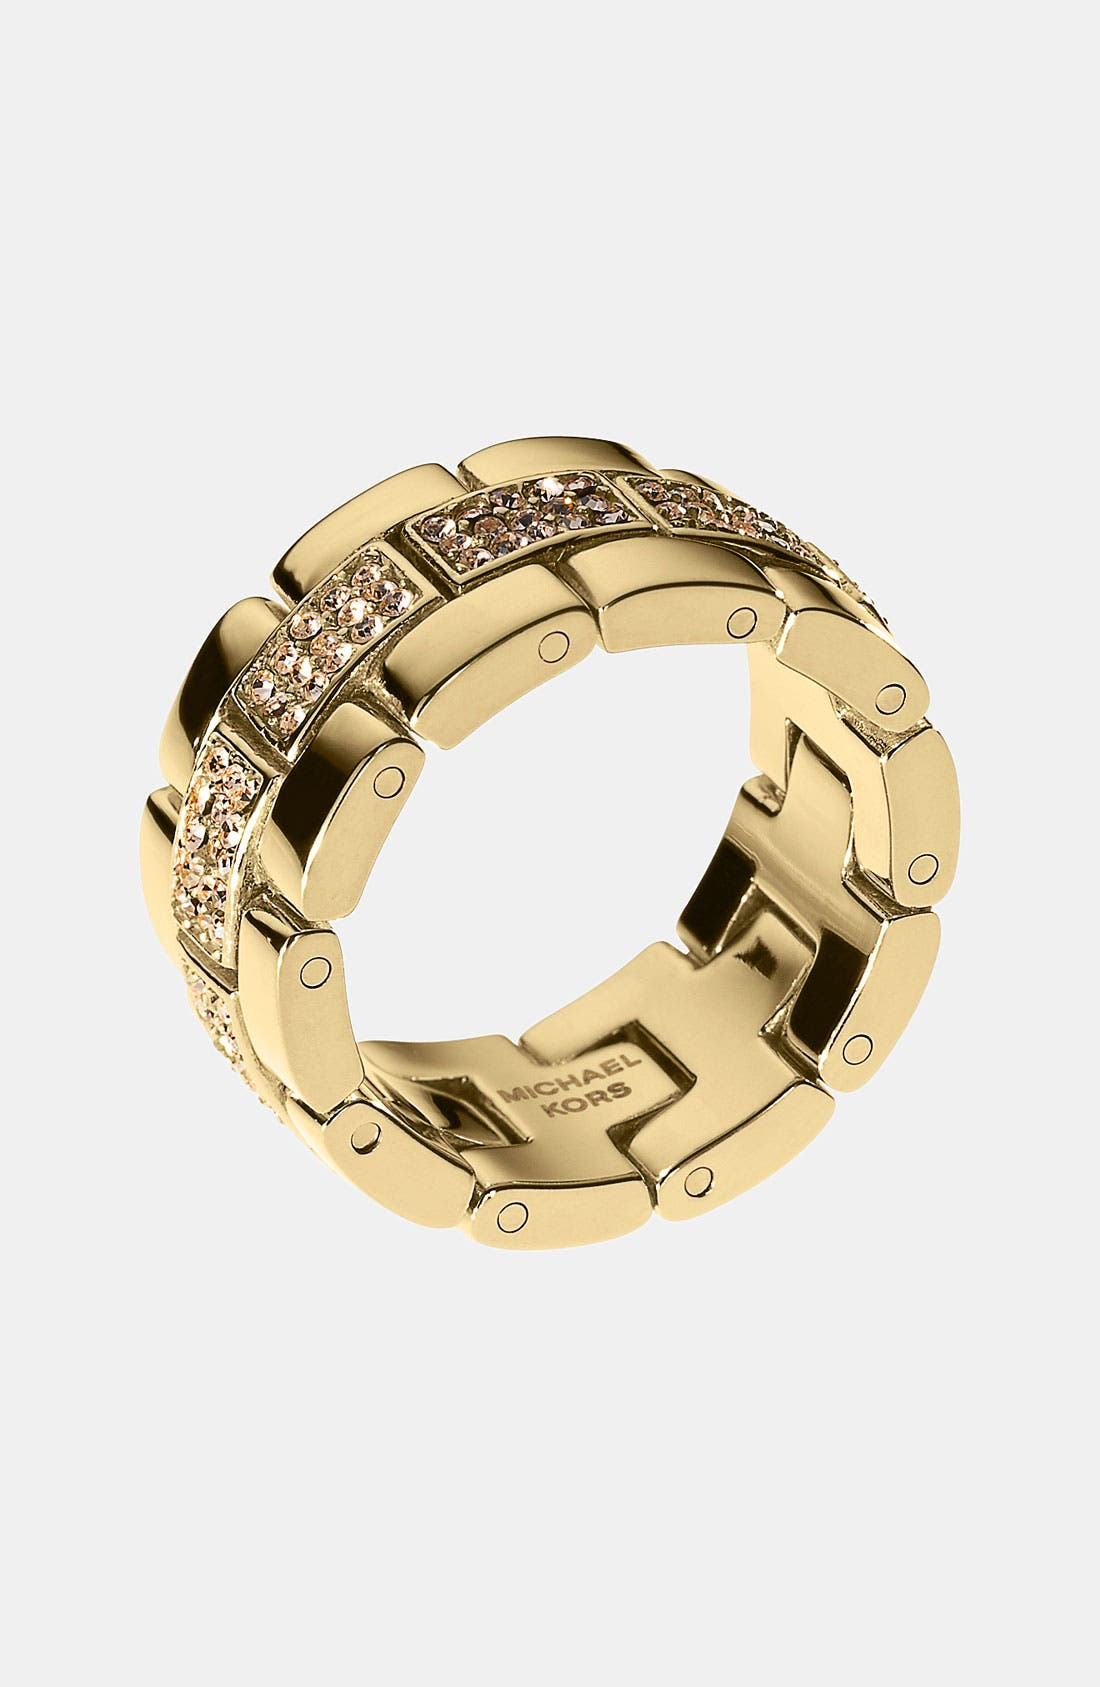 Main Image - Michael Kors Link Ring